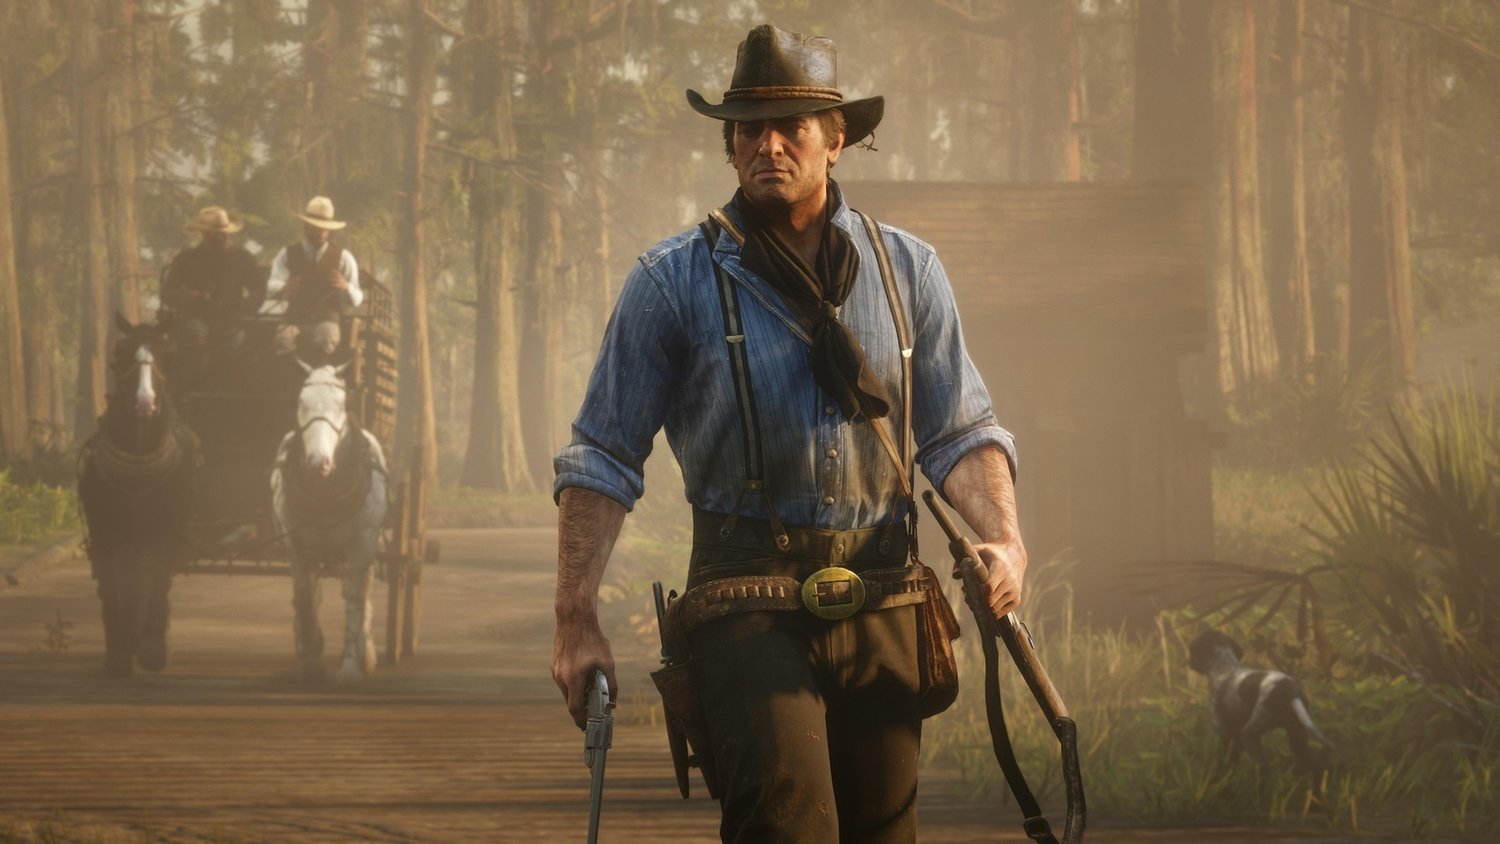 Dress Up Like a Badass Cowboy Thanks To This RED DEAD